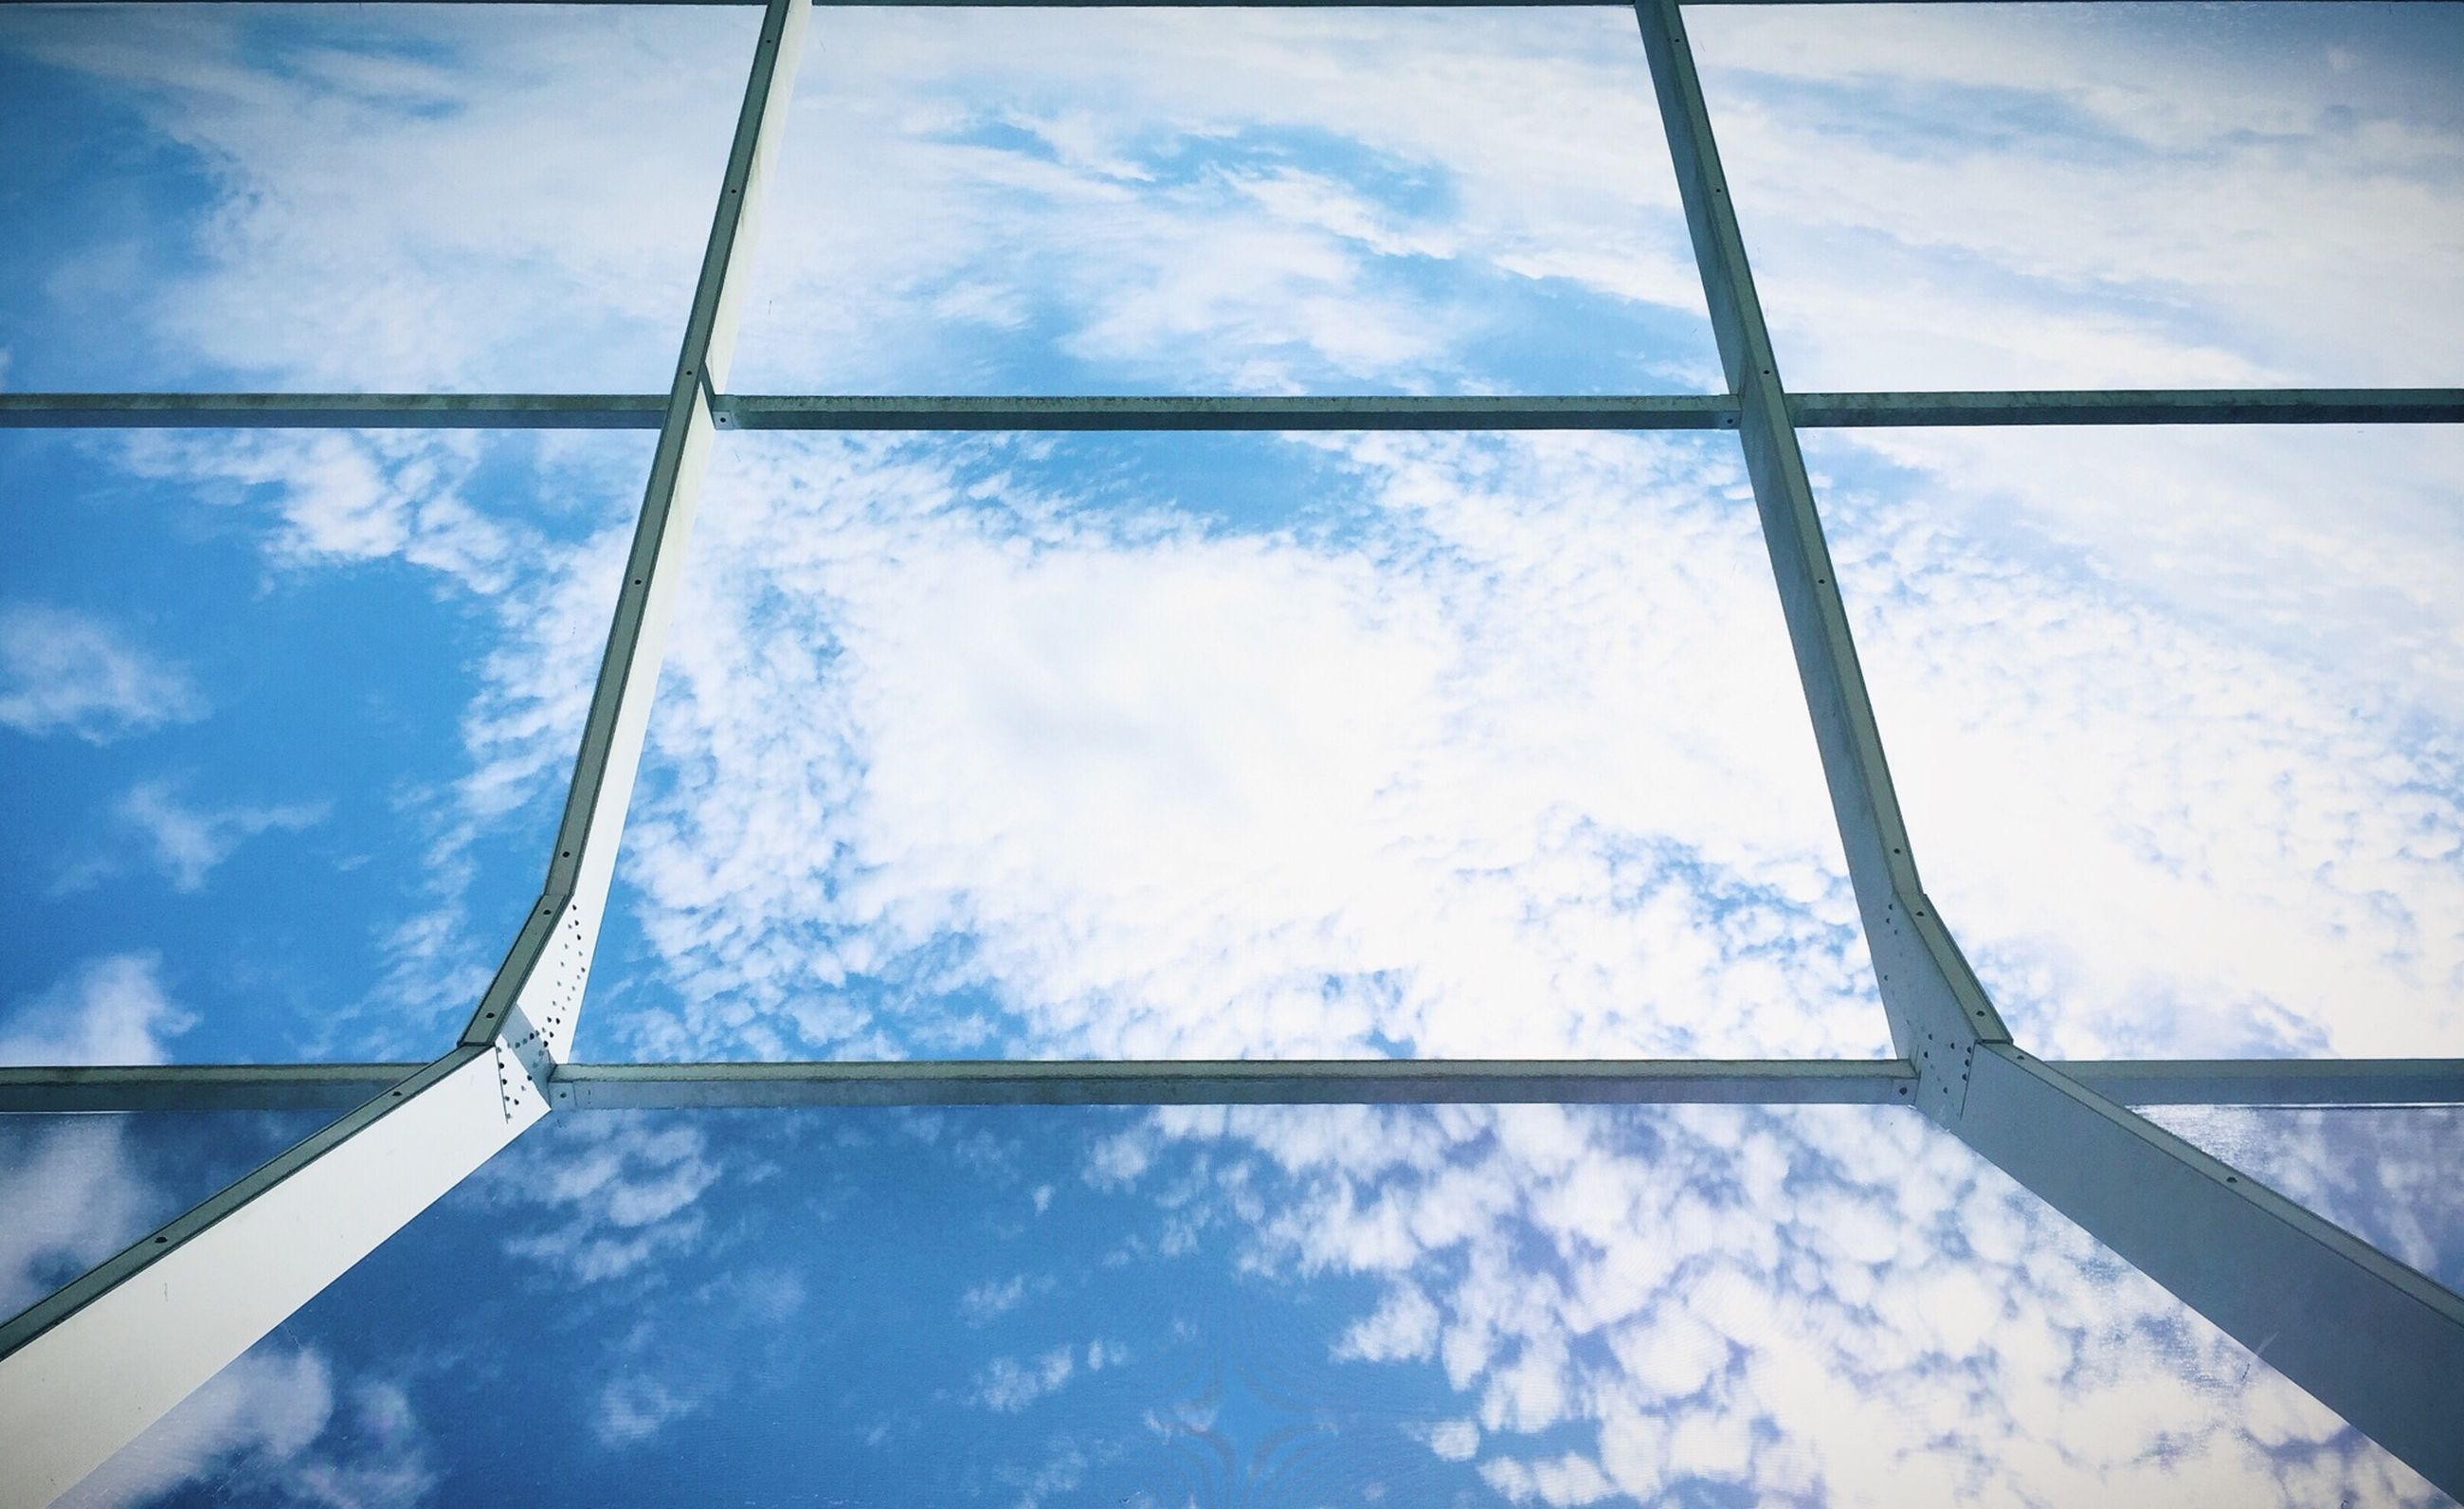 sky, low angle view, cloud - sky, cloudy, cloud, directly below, day, glass - material, blue, cloudscape, weather, no people, built structure, nature, window, part of, outdoors, backgrounds, overcast, full frame